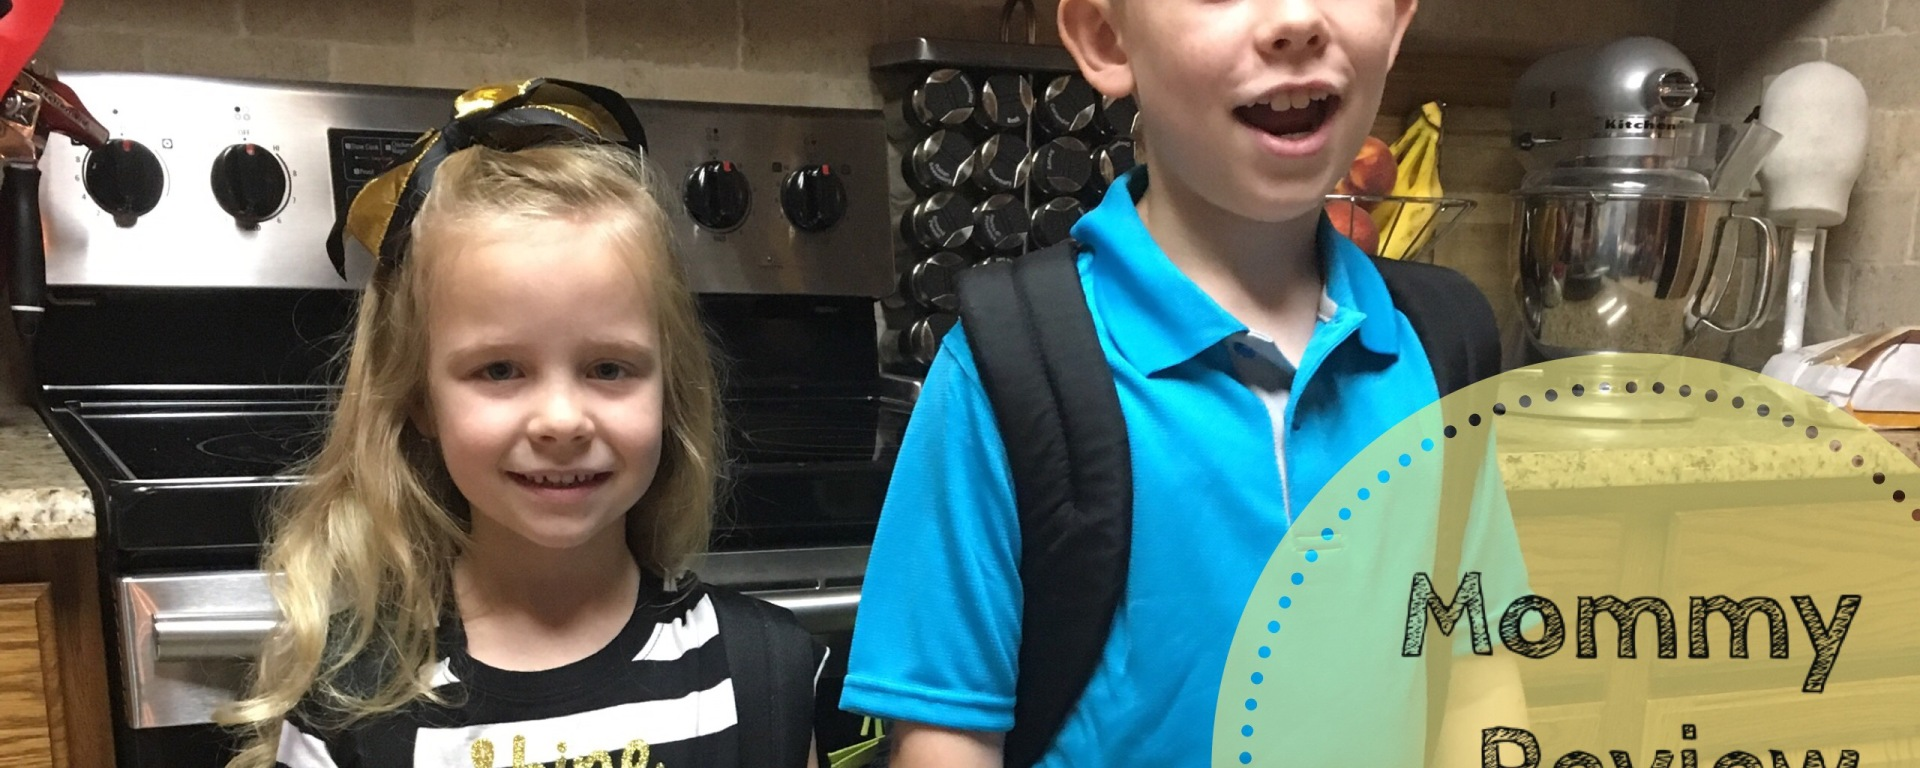 Mommy Review Monday  JanSport Big Student Backpacks – Chicken Minus Head 84eabc99a56e4